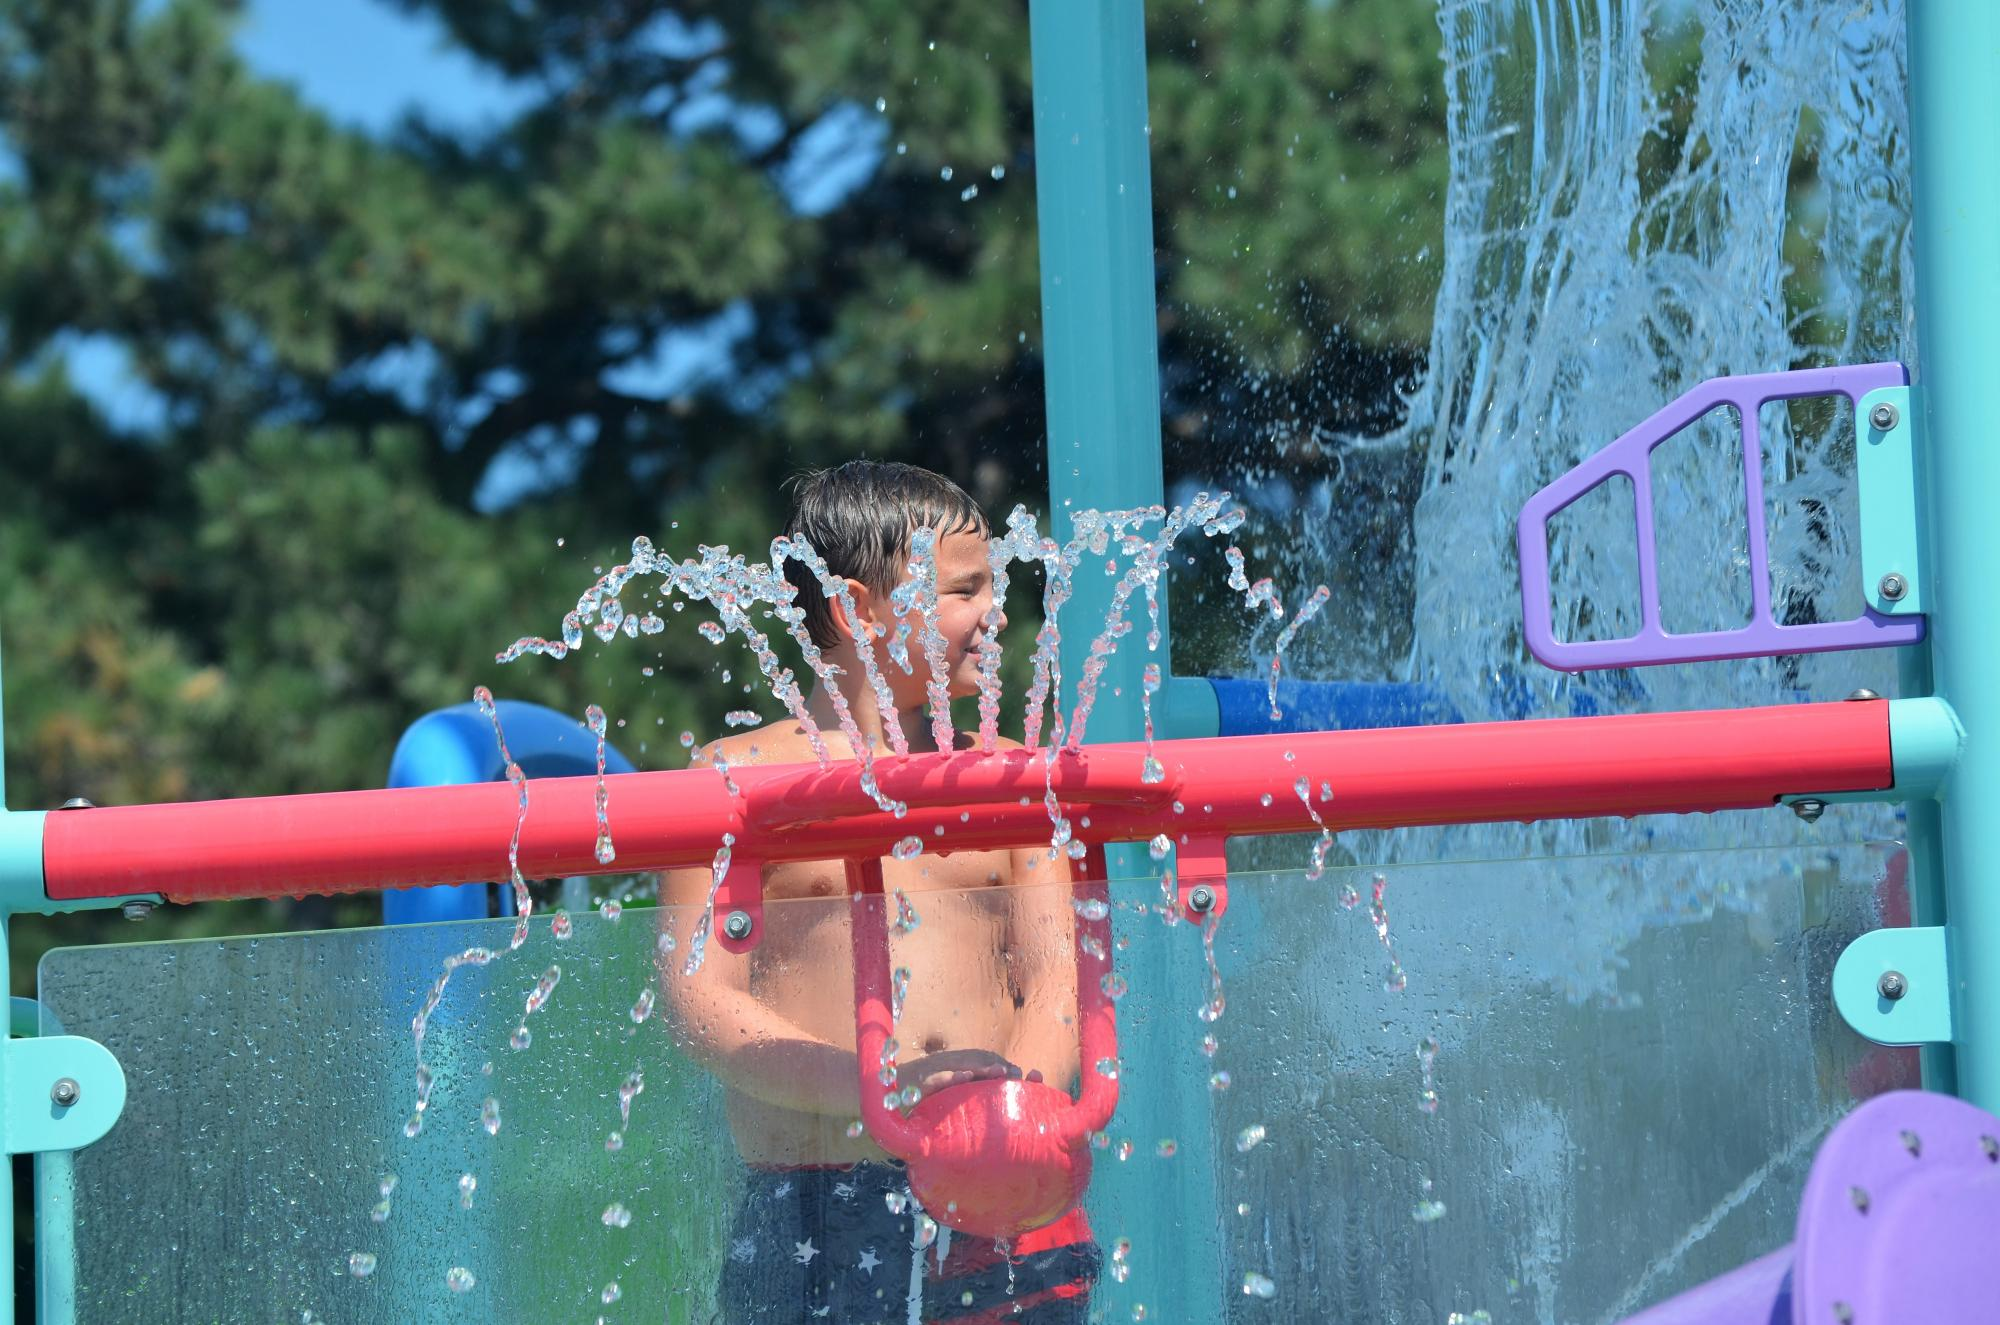 A young boy enjoys a water feature at Geneva Aquatic Center in Geneva, NE